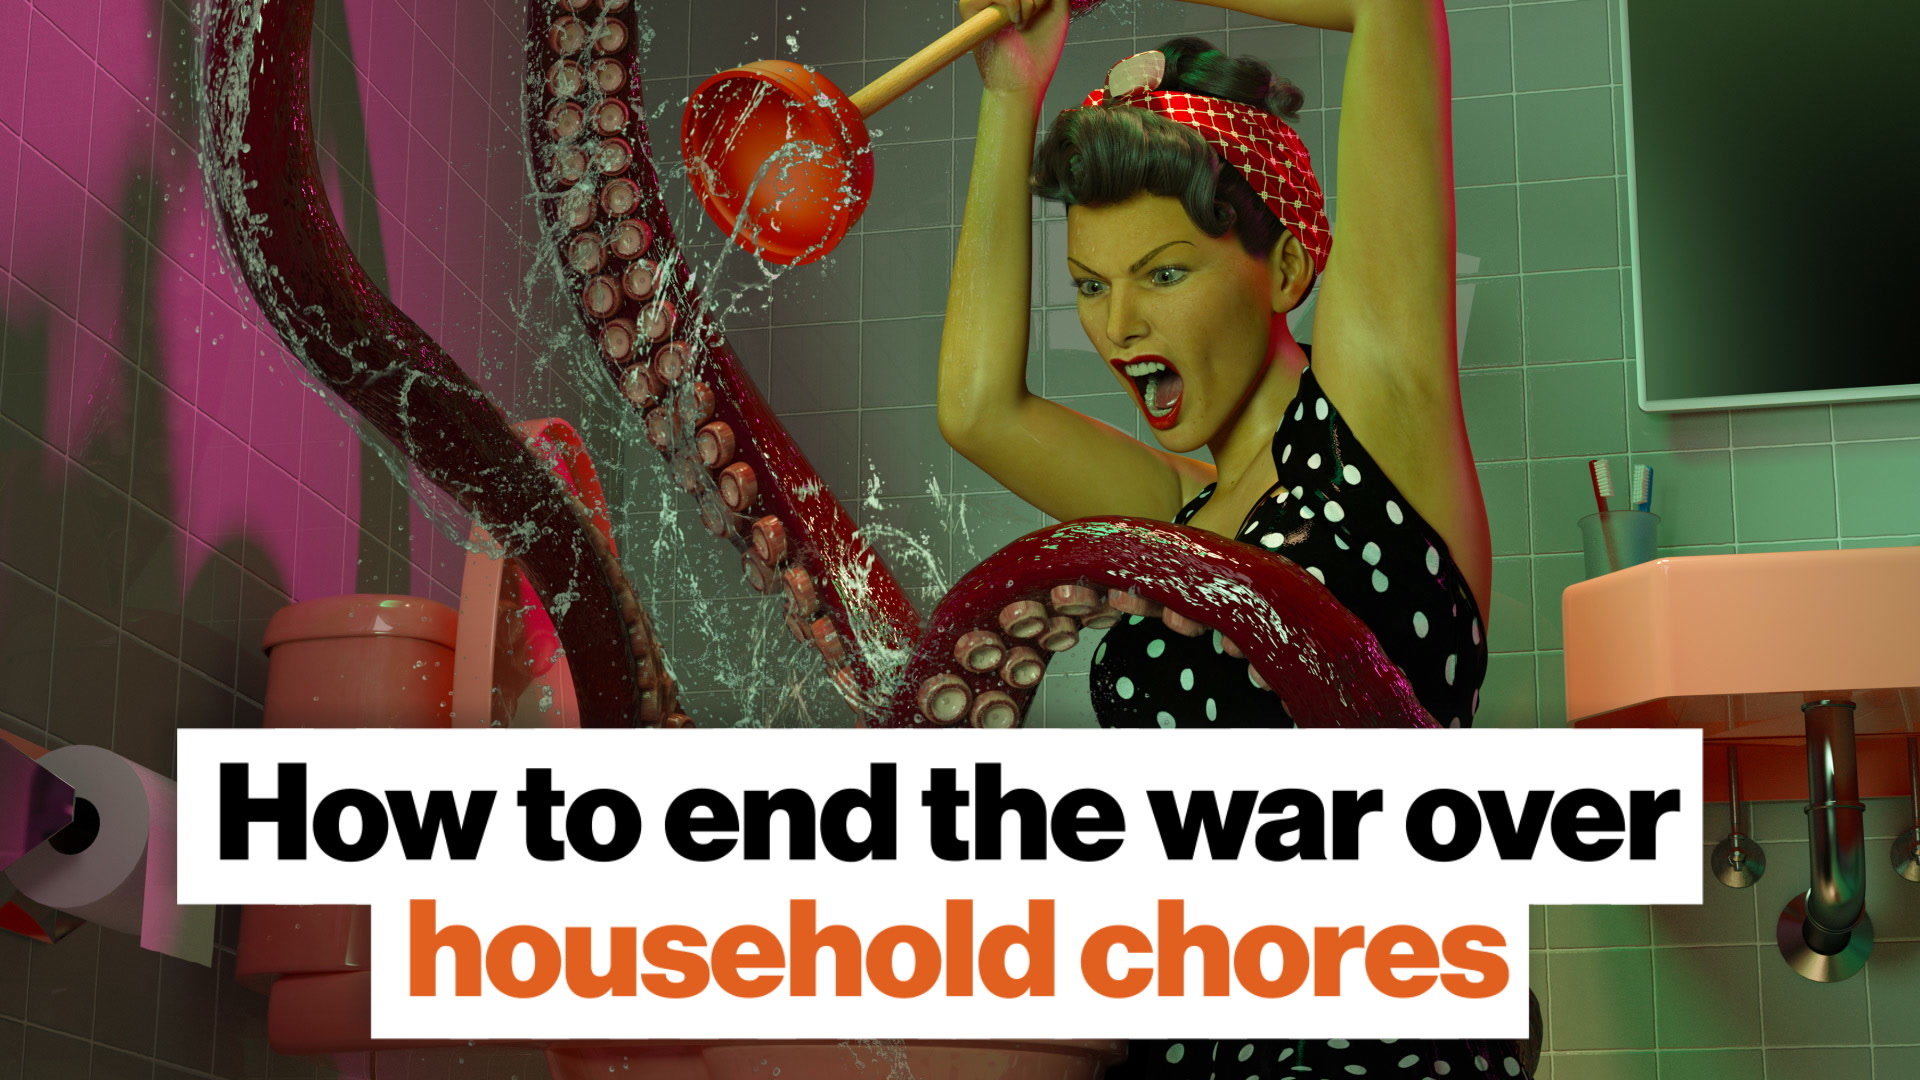 Chores cause conflict. Try managing them like this instead.